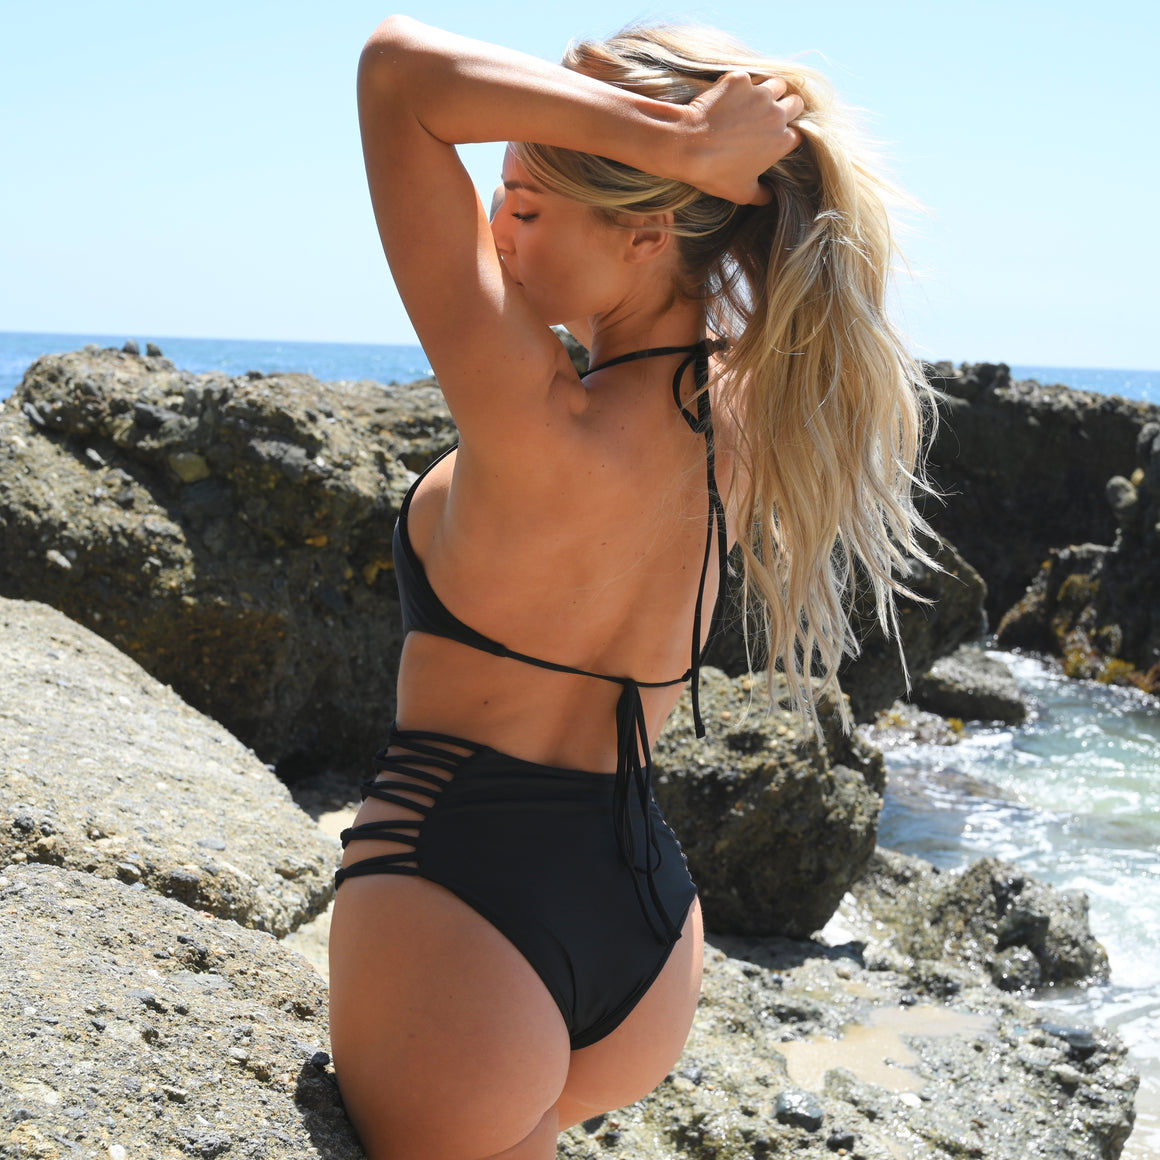 Bahama Strap One Piece Bikini in Black